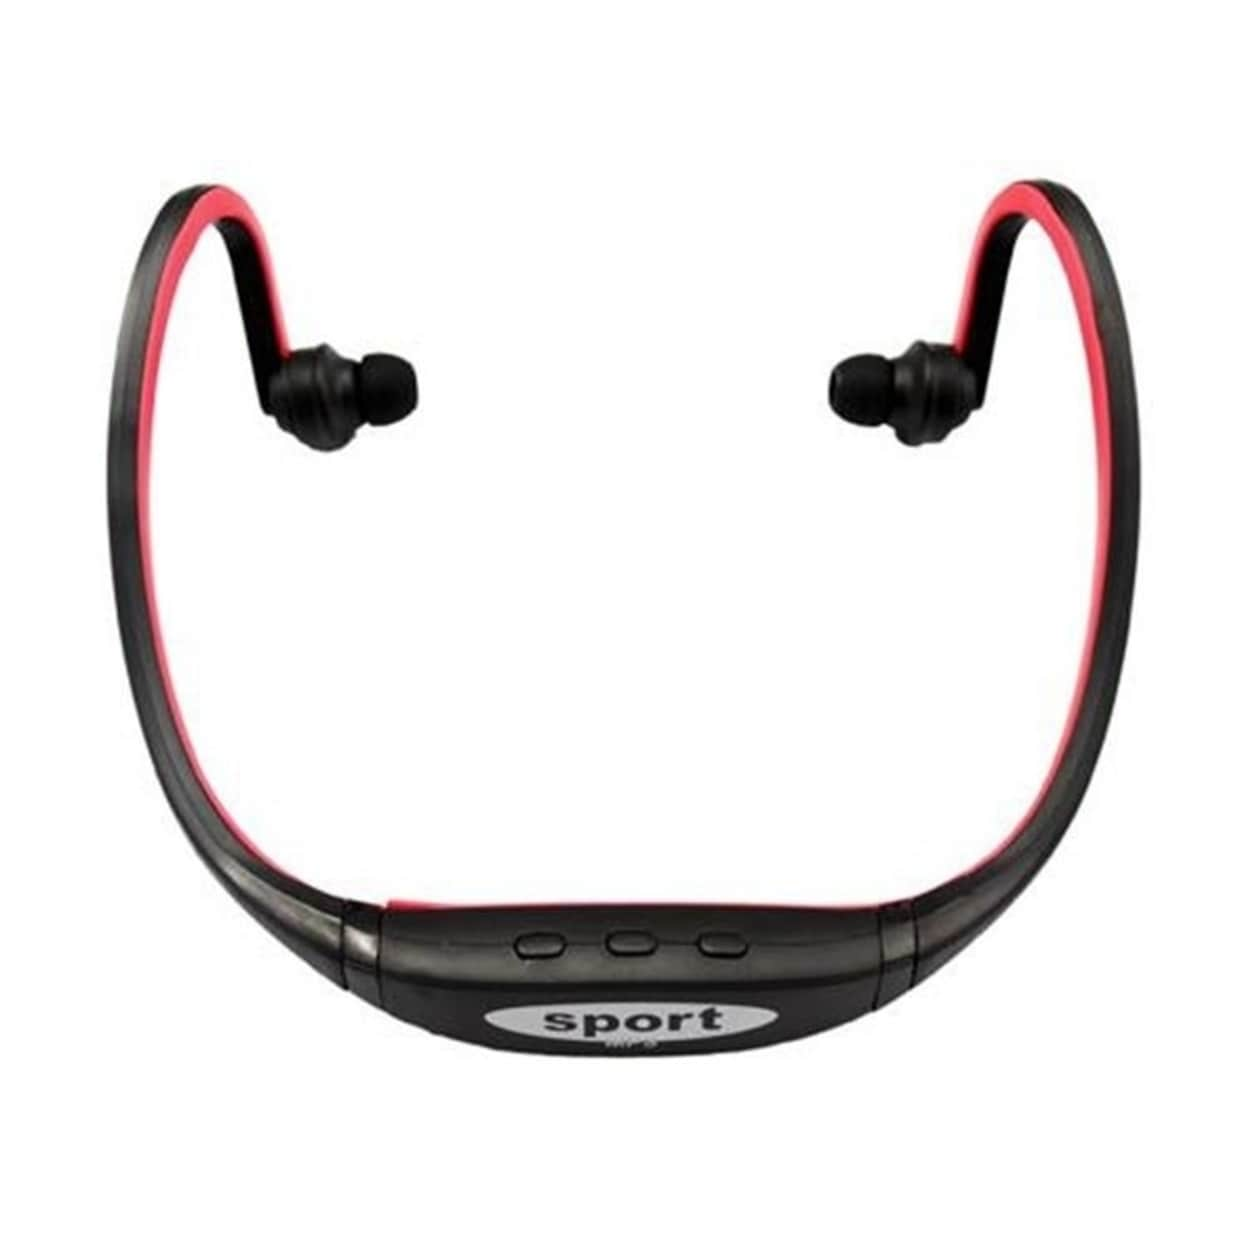 Shop Sport MP3 Player Wireless Handsfree Headset Headphones Music Player Neckband Headset Support Micro SD/TF Card + FM Radio - Free Shipping On Orders Over ...